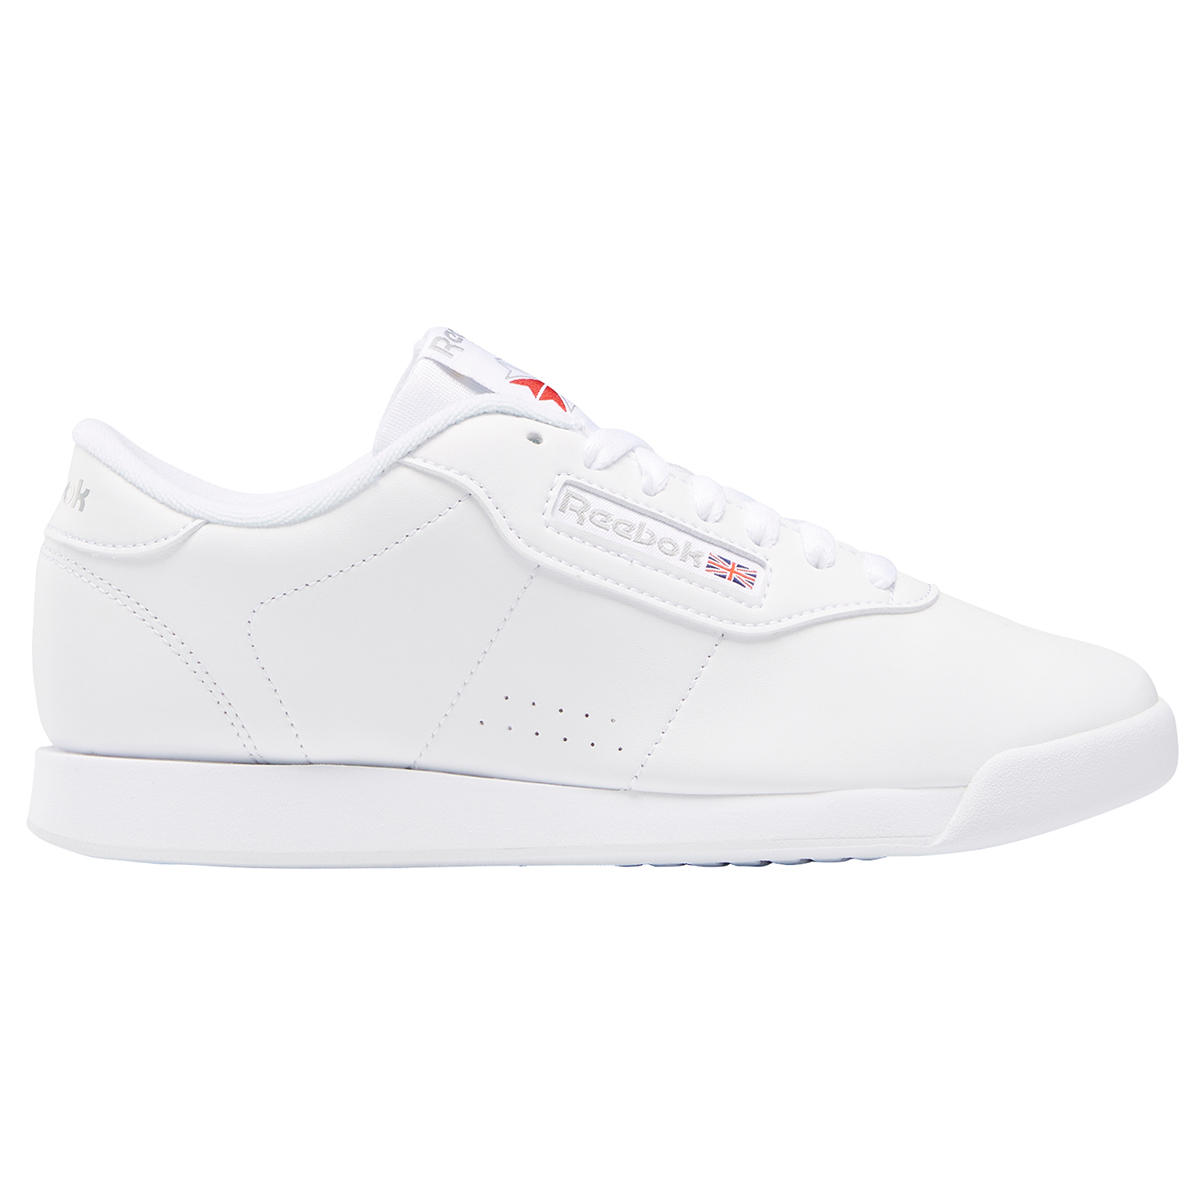 Reebok Women's Casual Princess Sneakers - White, 6.5